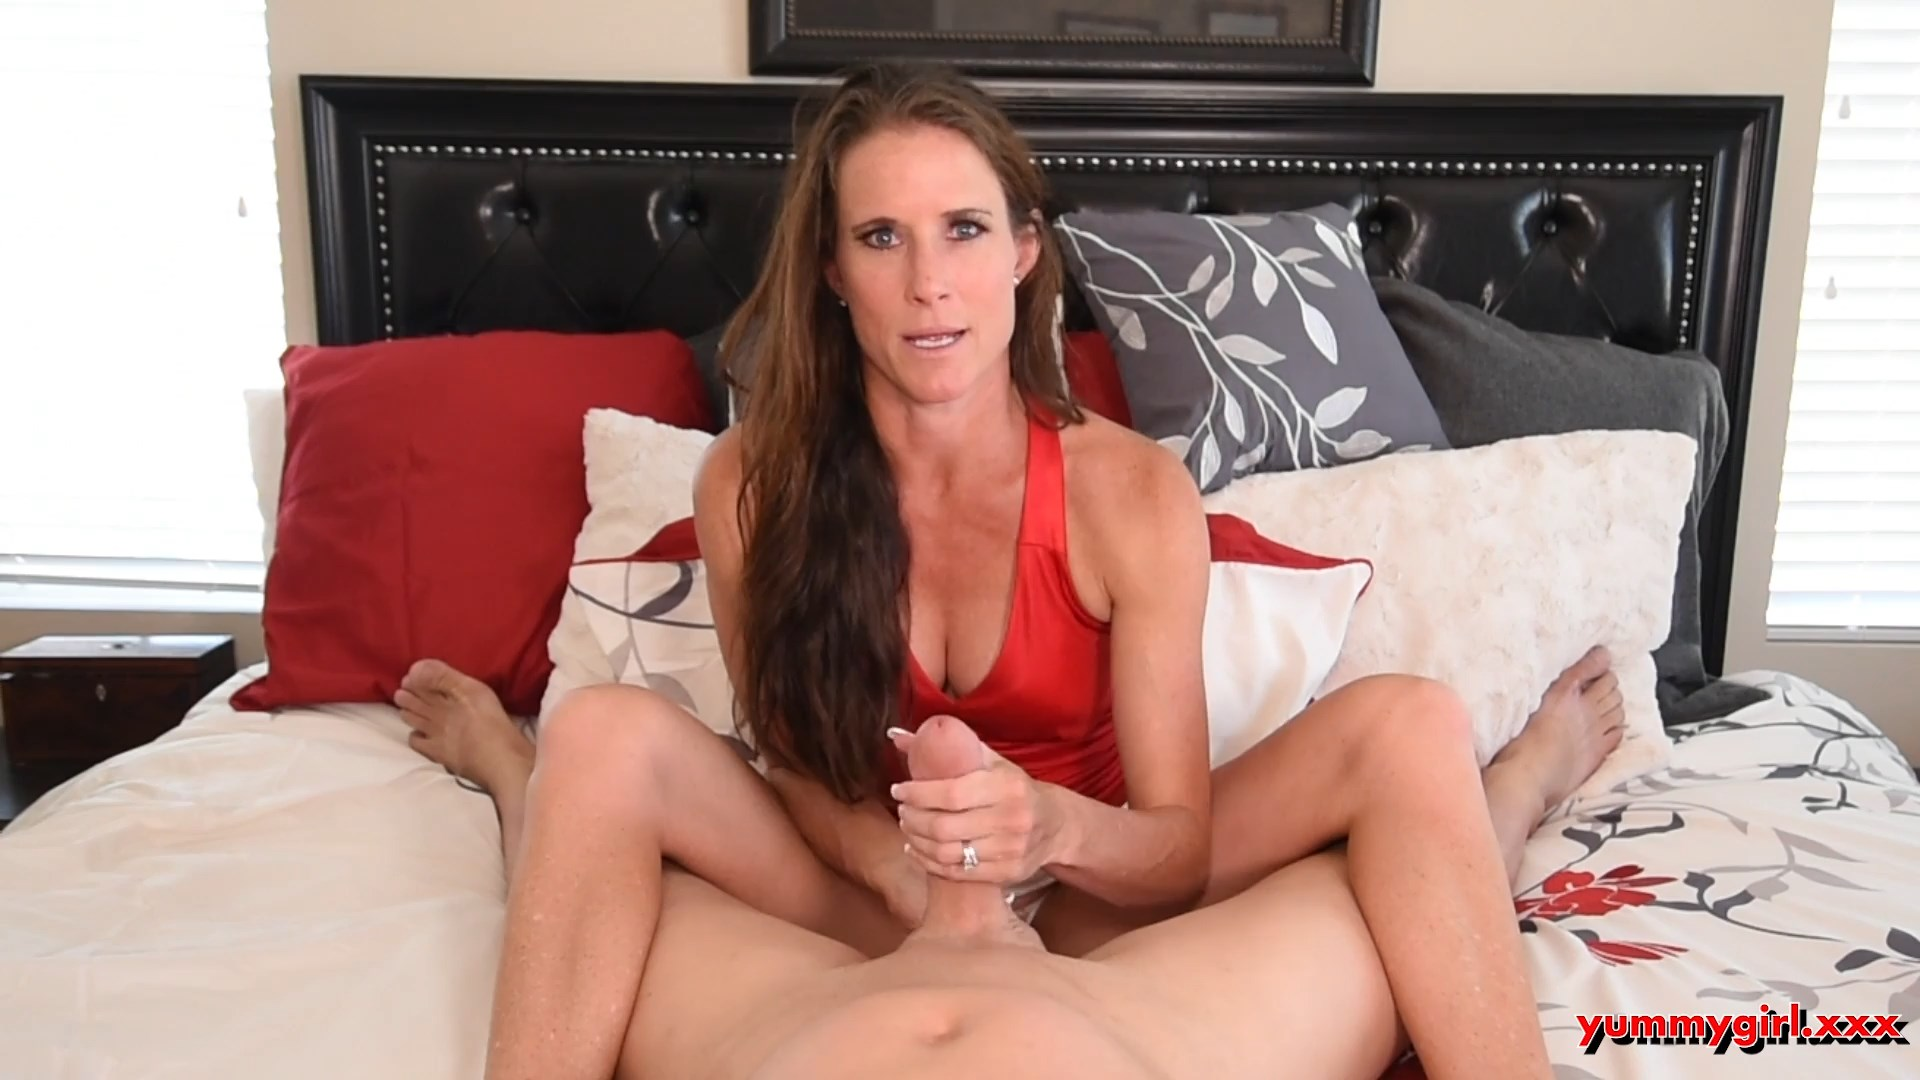 Yummy Sofie - JOI Lesson #2 Step Mom Jack Off - Sofie Marie